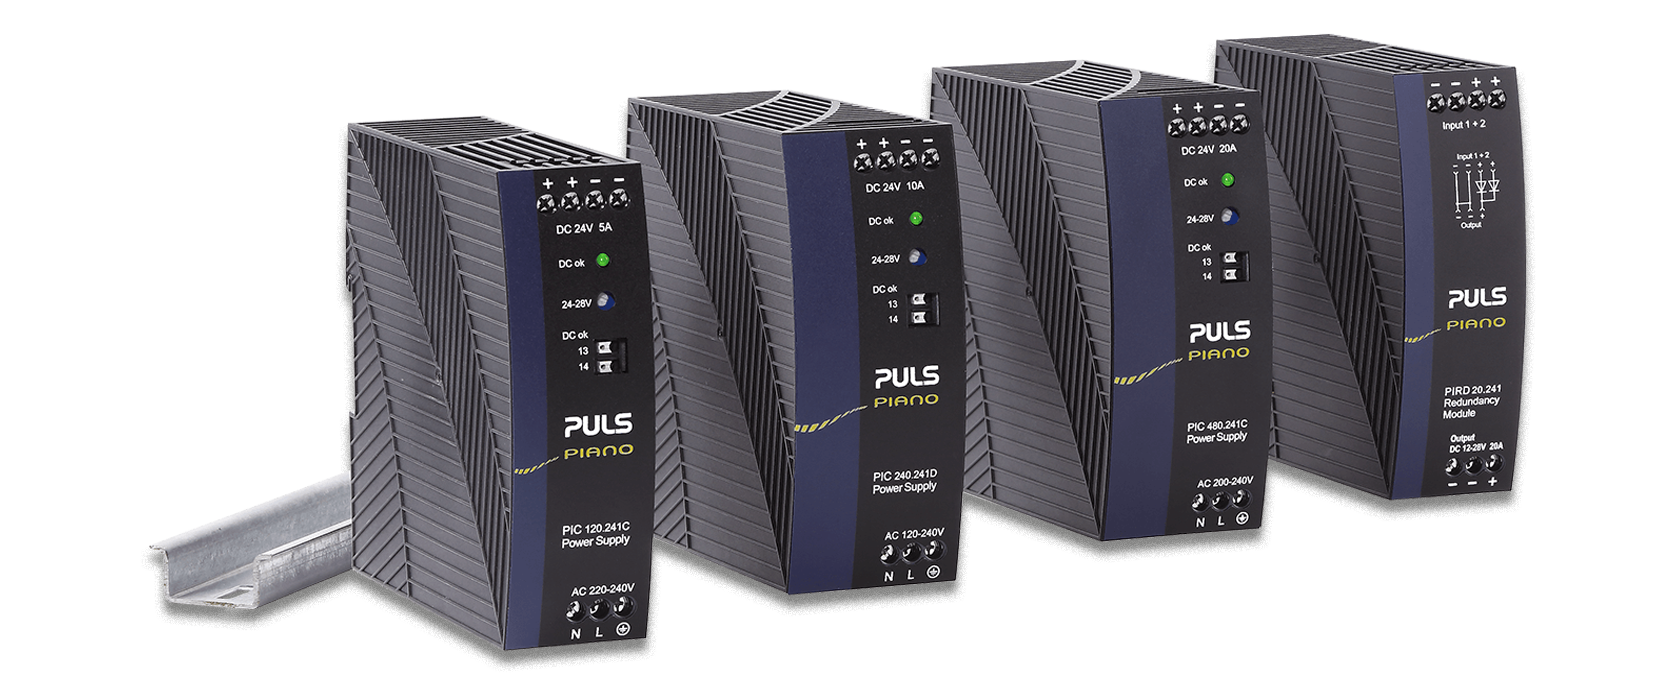 New PIANO power supplies